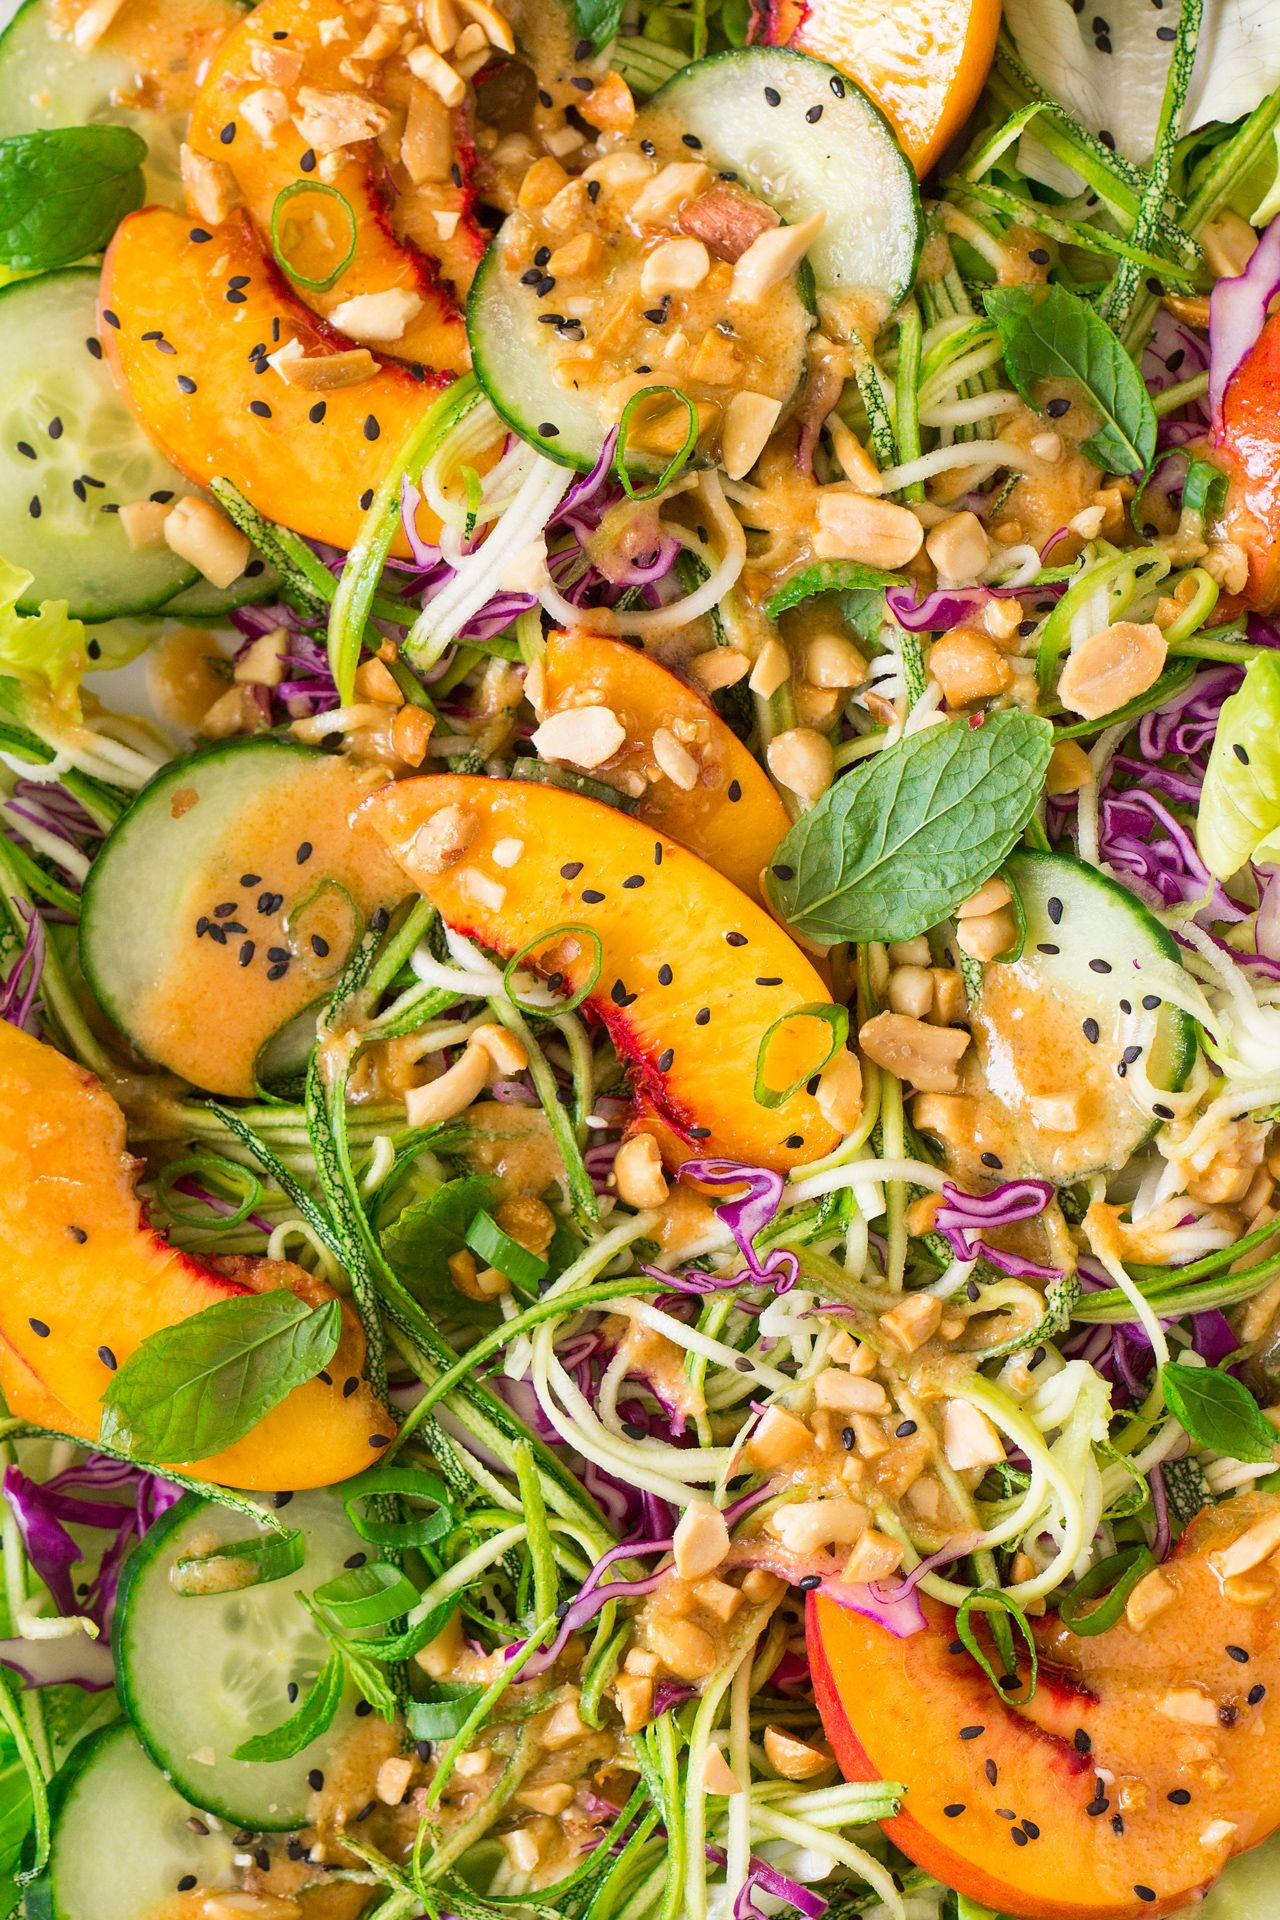 Asian Zucchini Noodle Salad With Vegan Miso Dressing